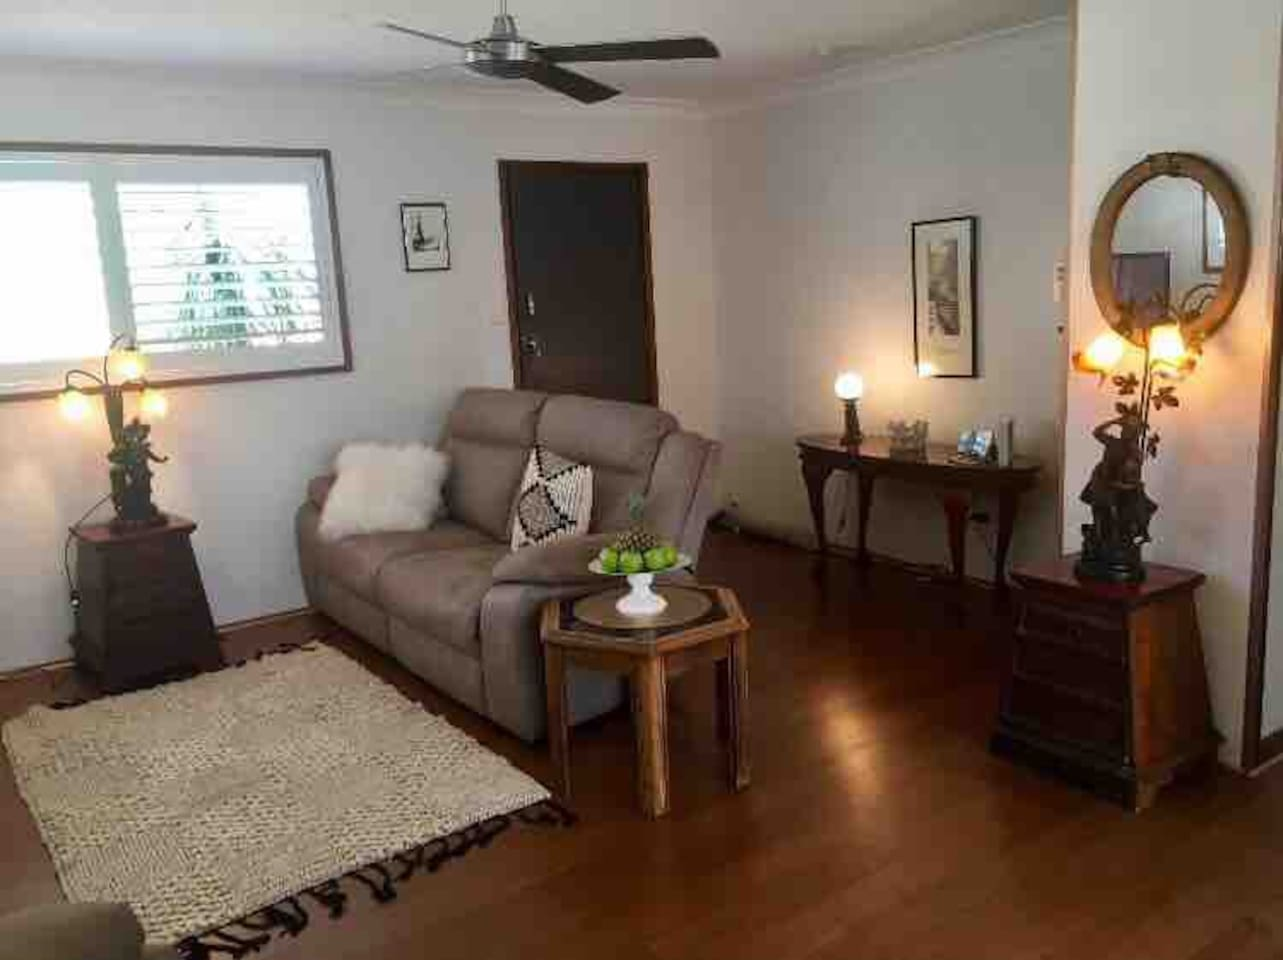 Fully renovated cottage with bamboo flooring,  plantation shutters with stylish eclectic decor.